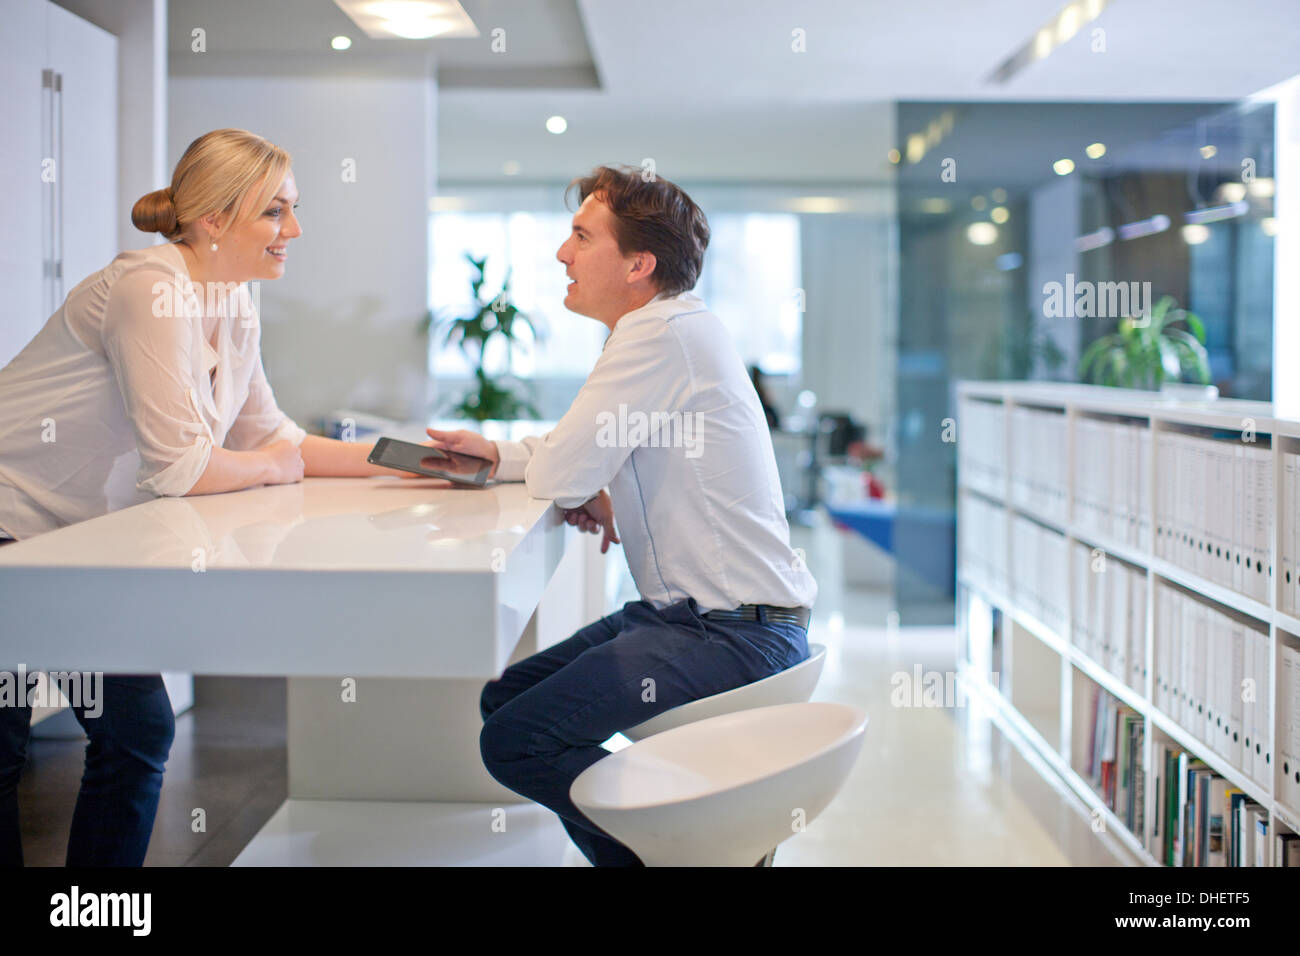 Businesspeople chatting in office - Stock Image